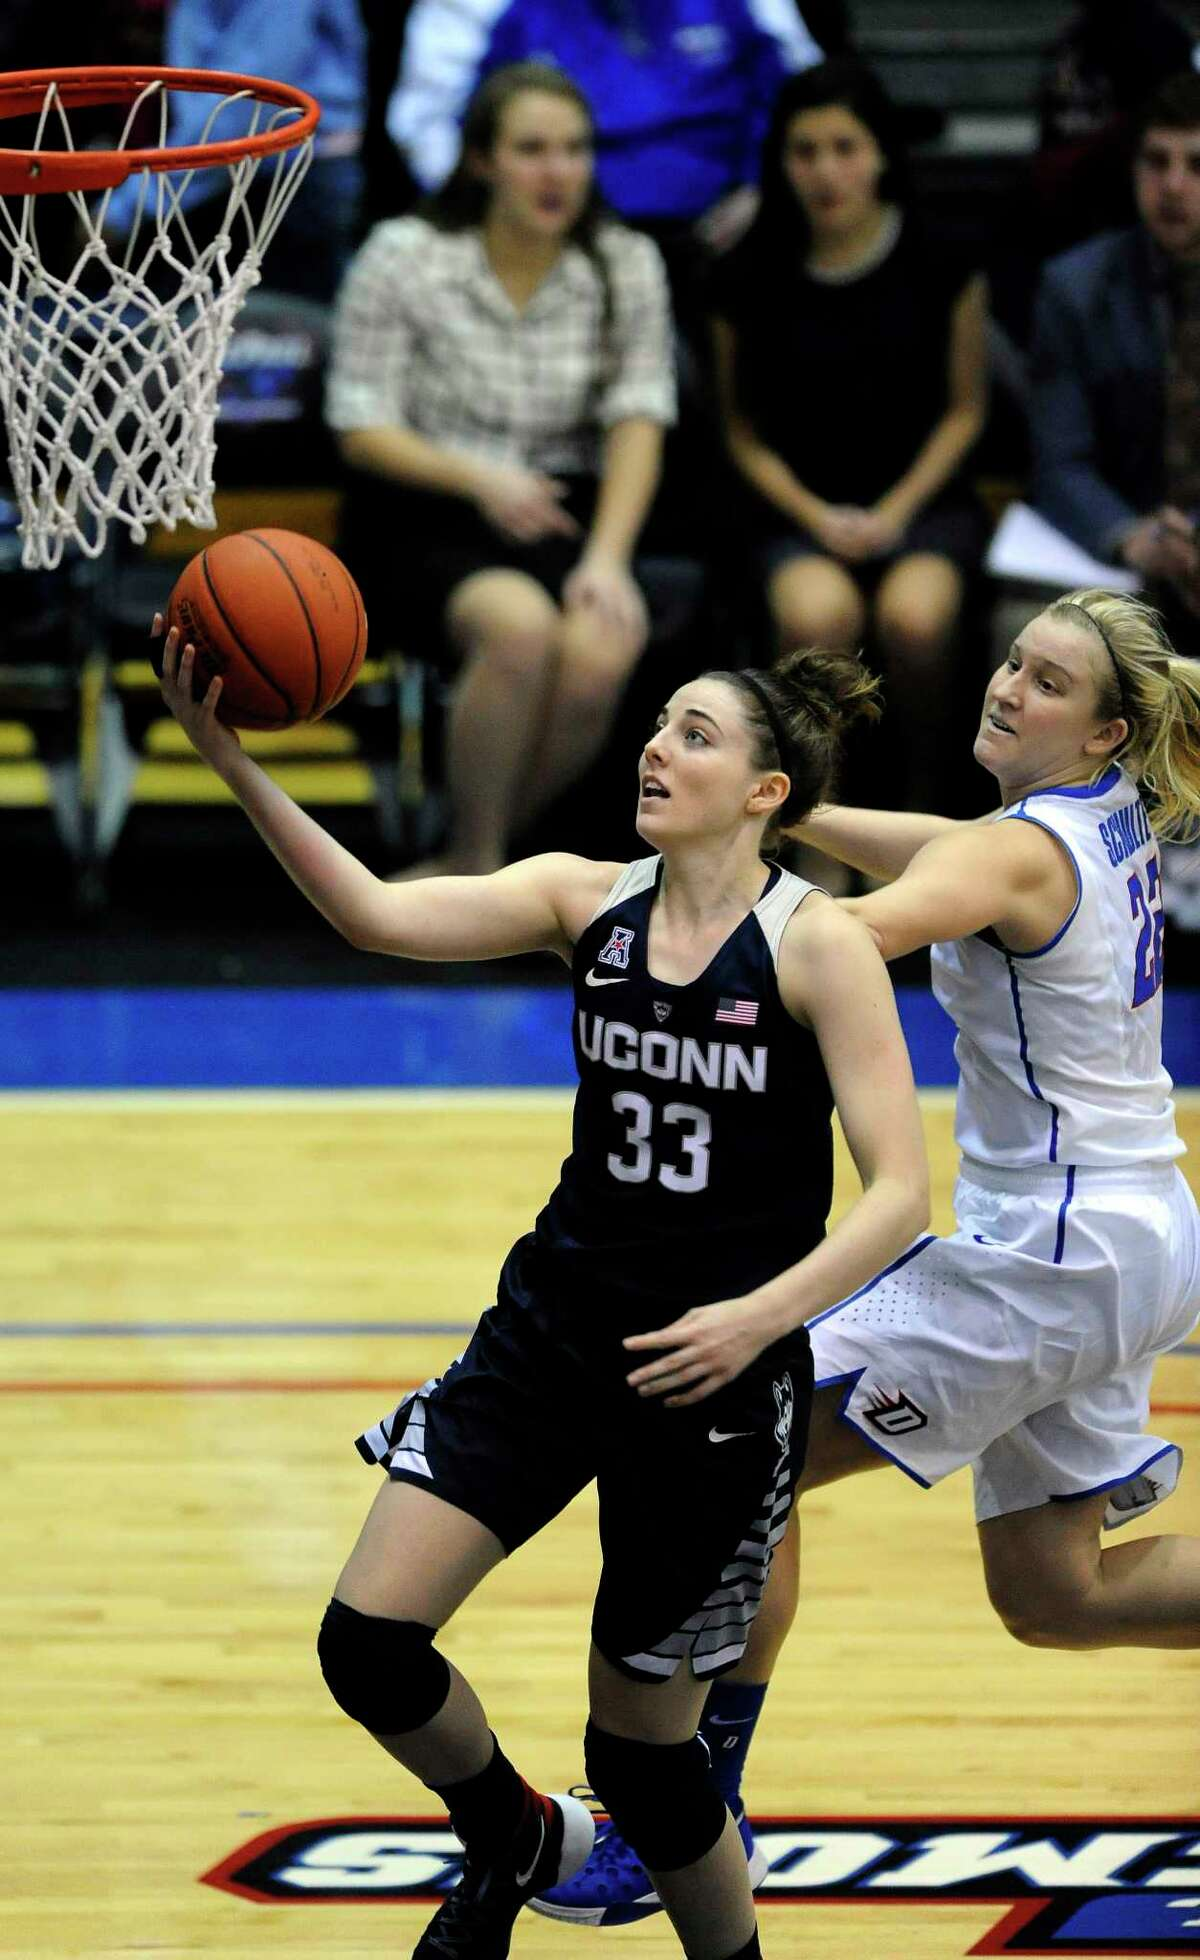 UConn freshman Katie Lou Samuelson goes up for a shot against DePaul's Brooke Schulte during the fourth quarter of the Huskies' 86-70 win Wednesday in Chicago.